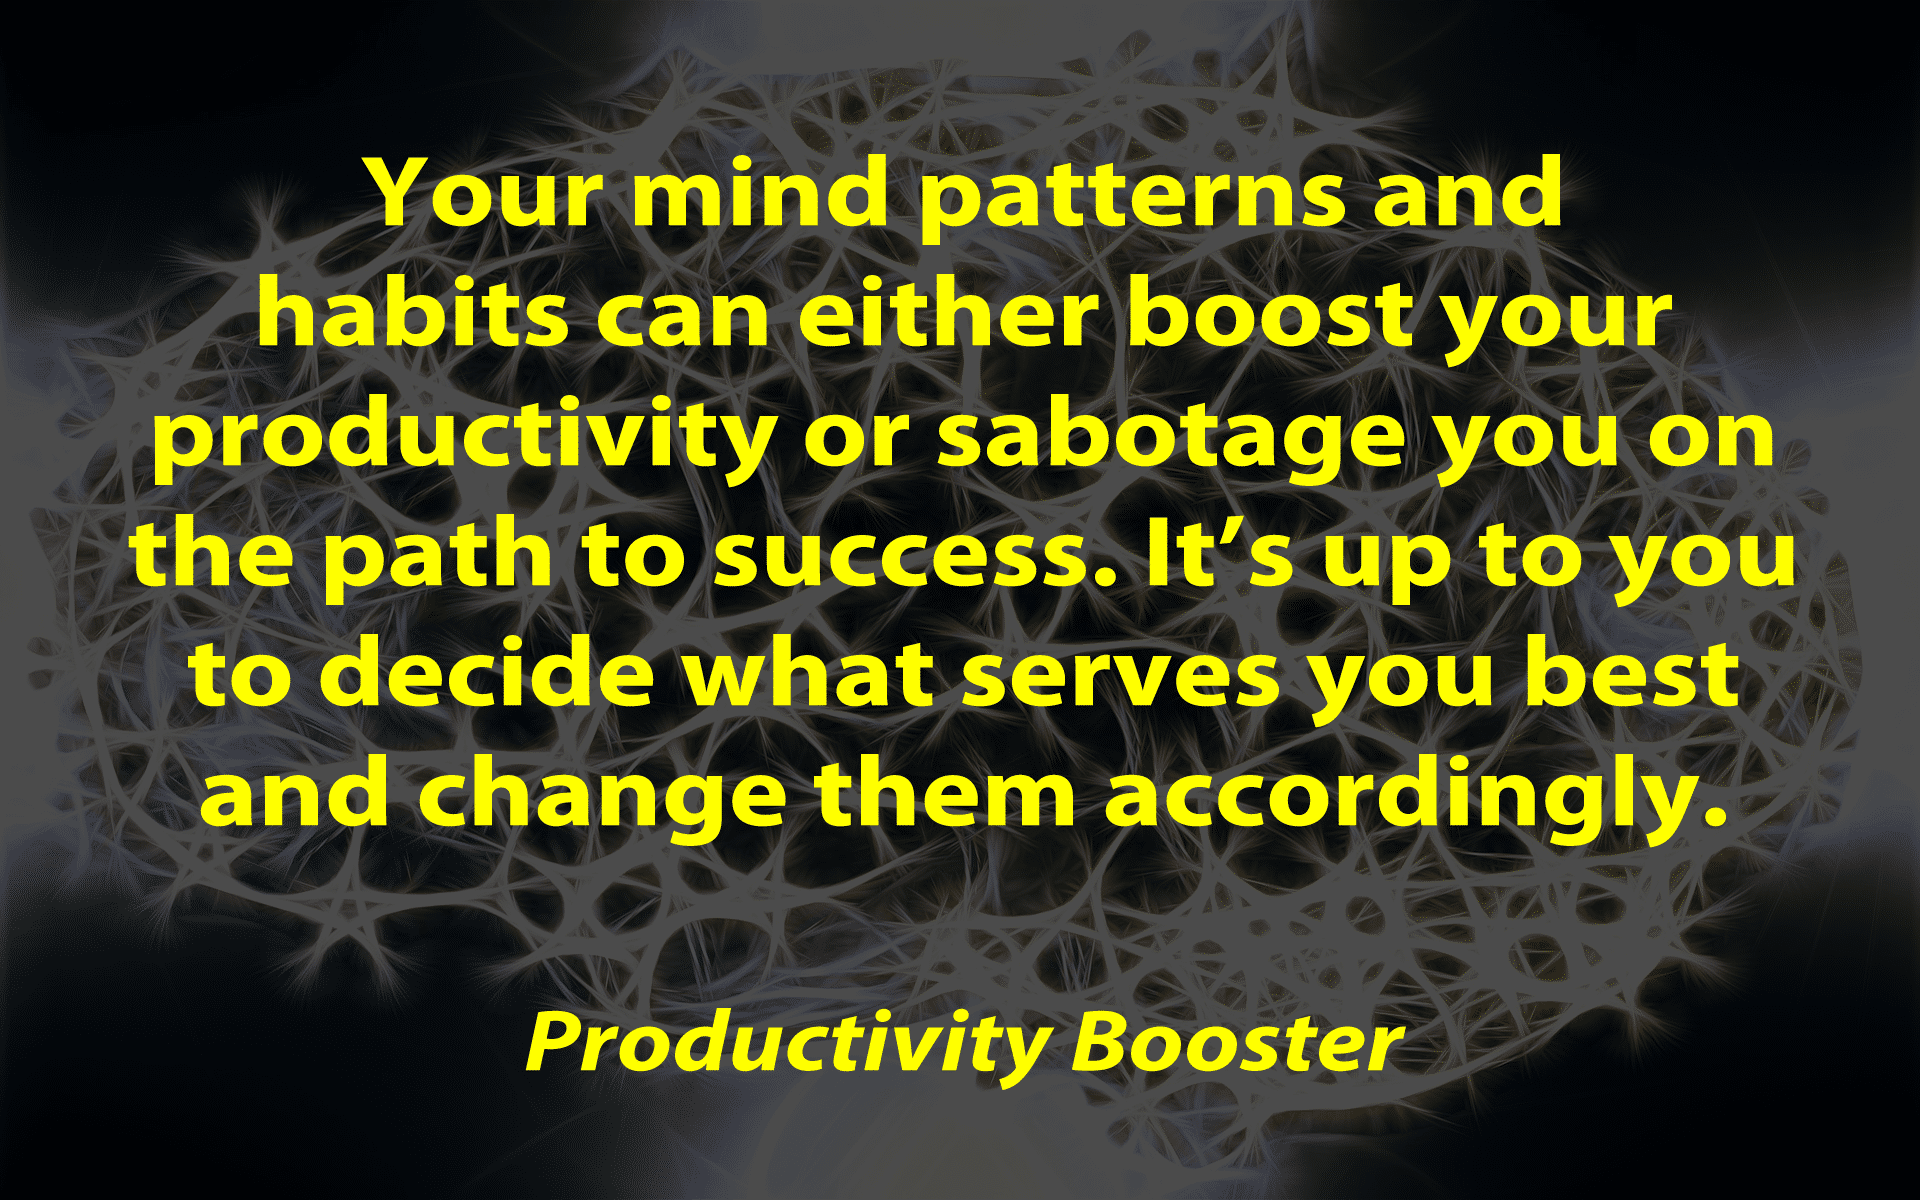 mind patterns and habits to boost productivity